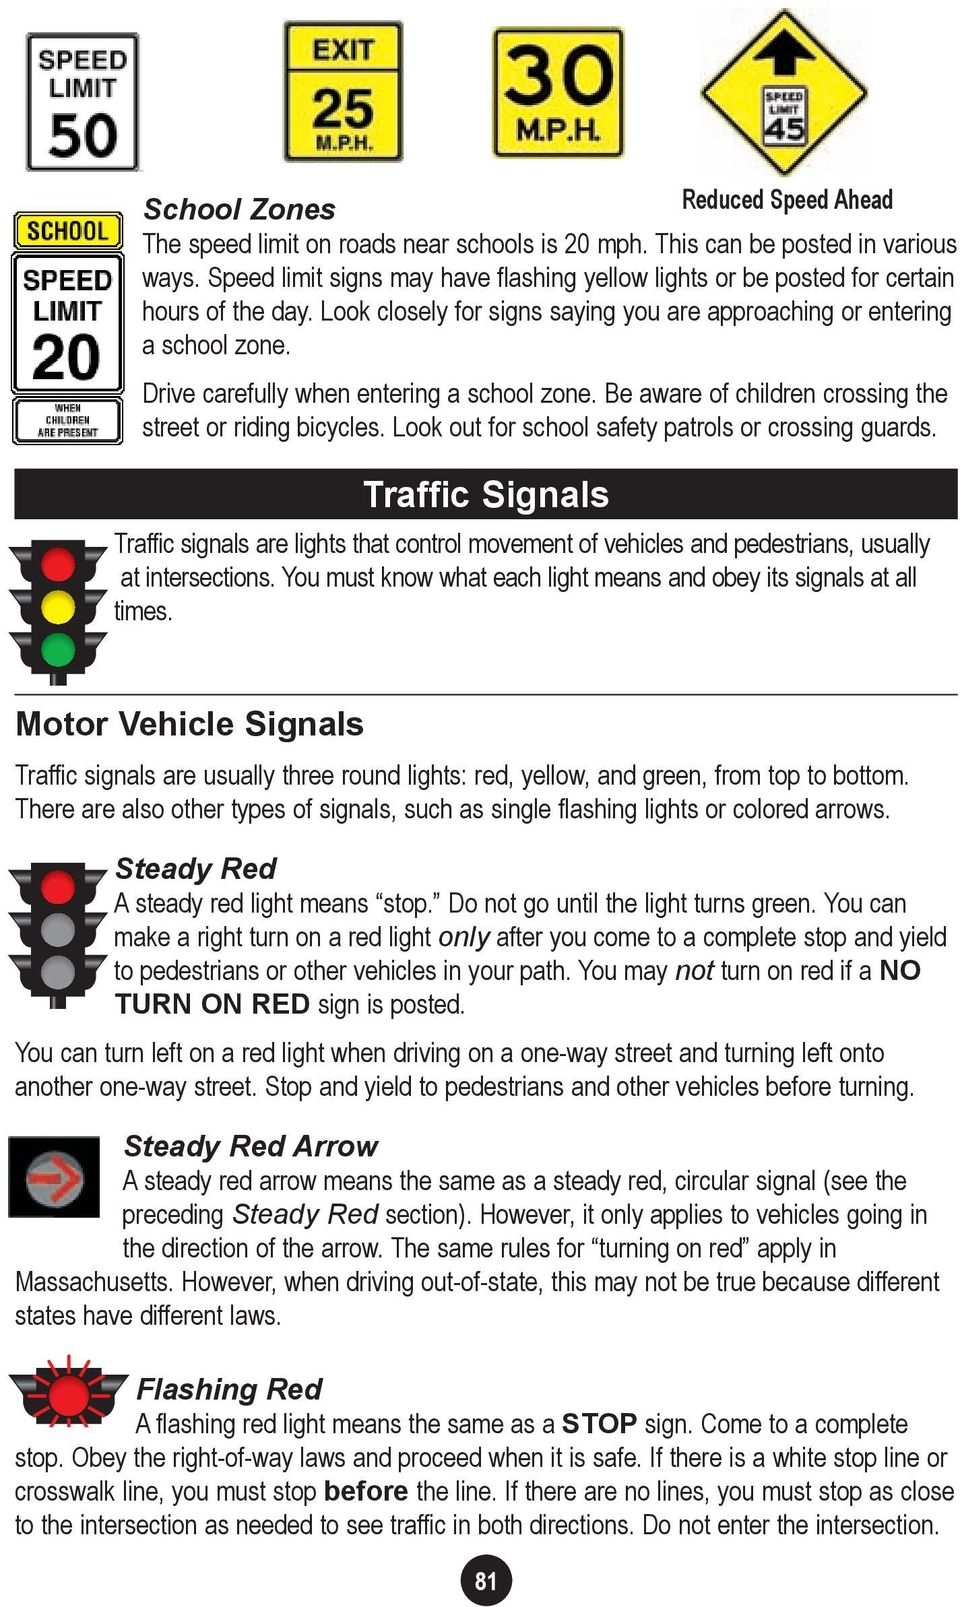 Drive carefully when entering a school zone. Be aware of children crossing the street or riding bicycles. Look out for school safety patrols or crossing guards.